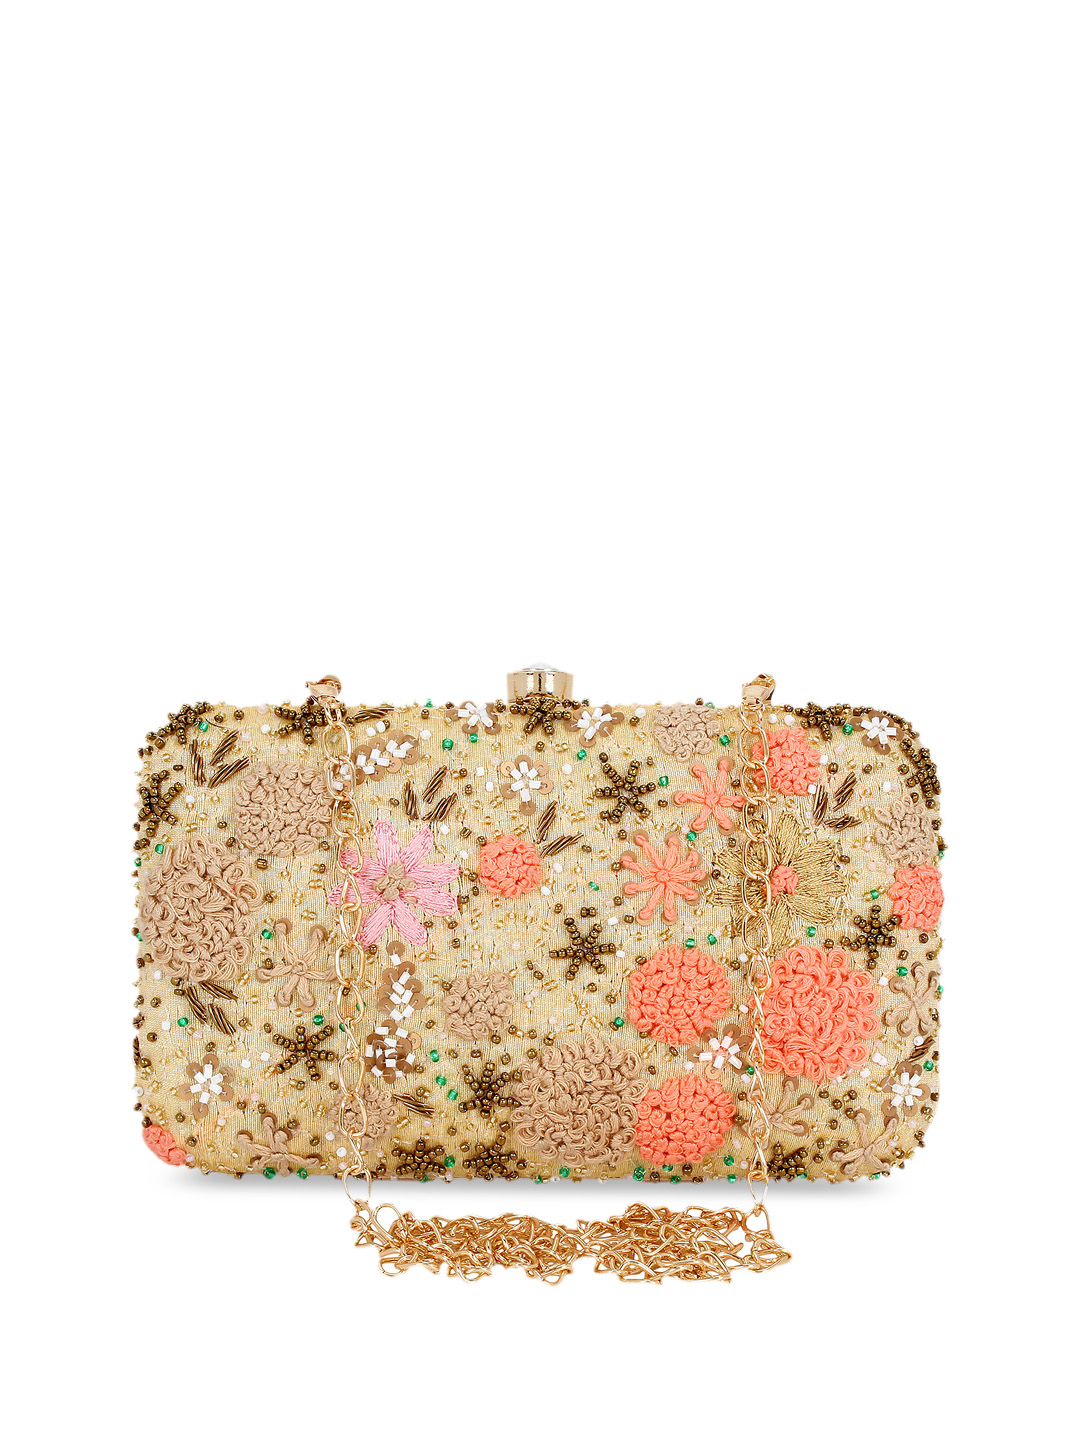 EMBROIDERED METAL FRAME CLUTCH